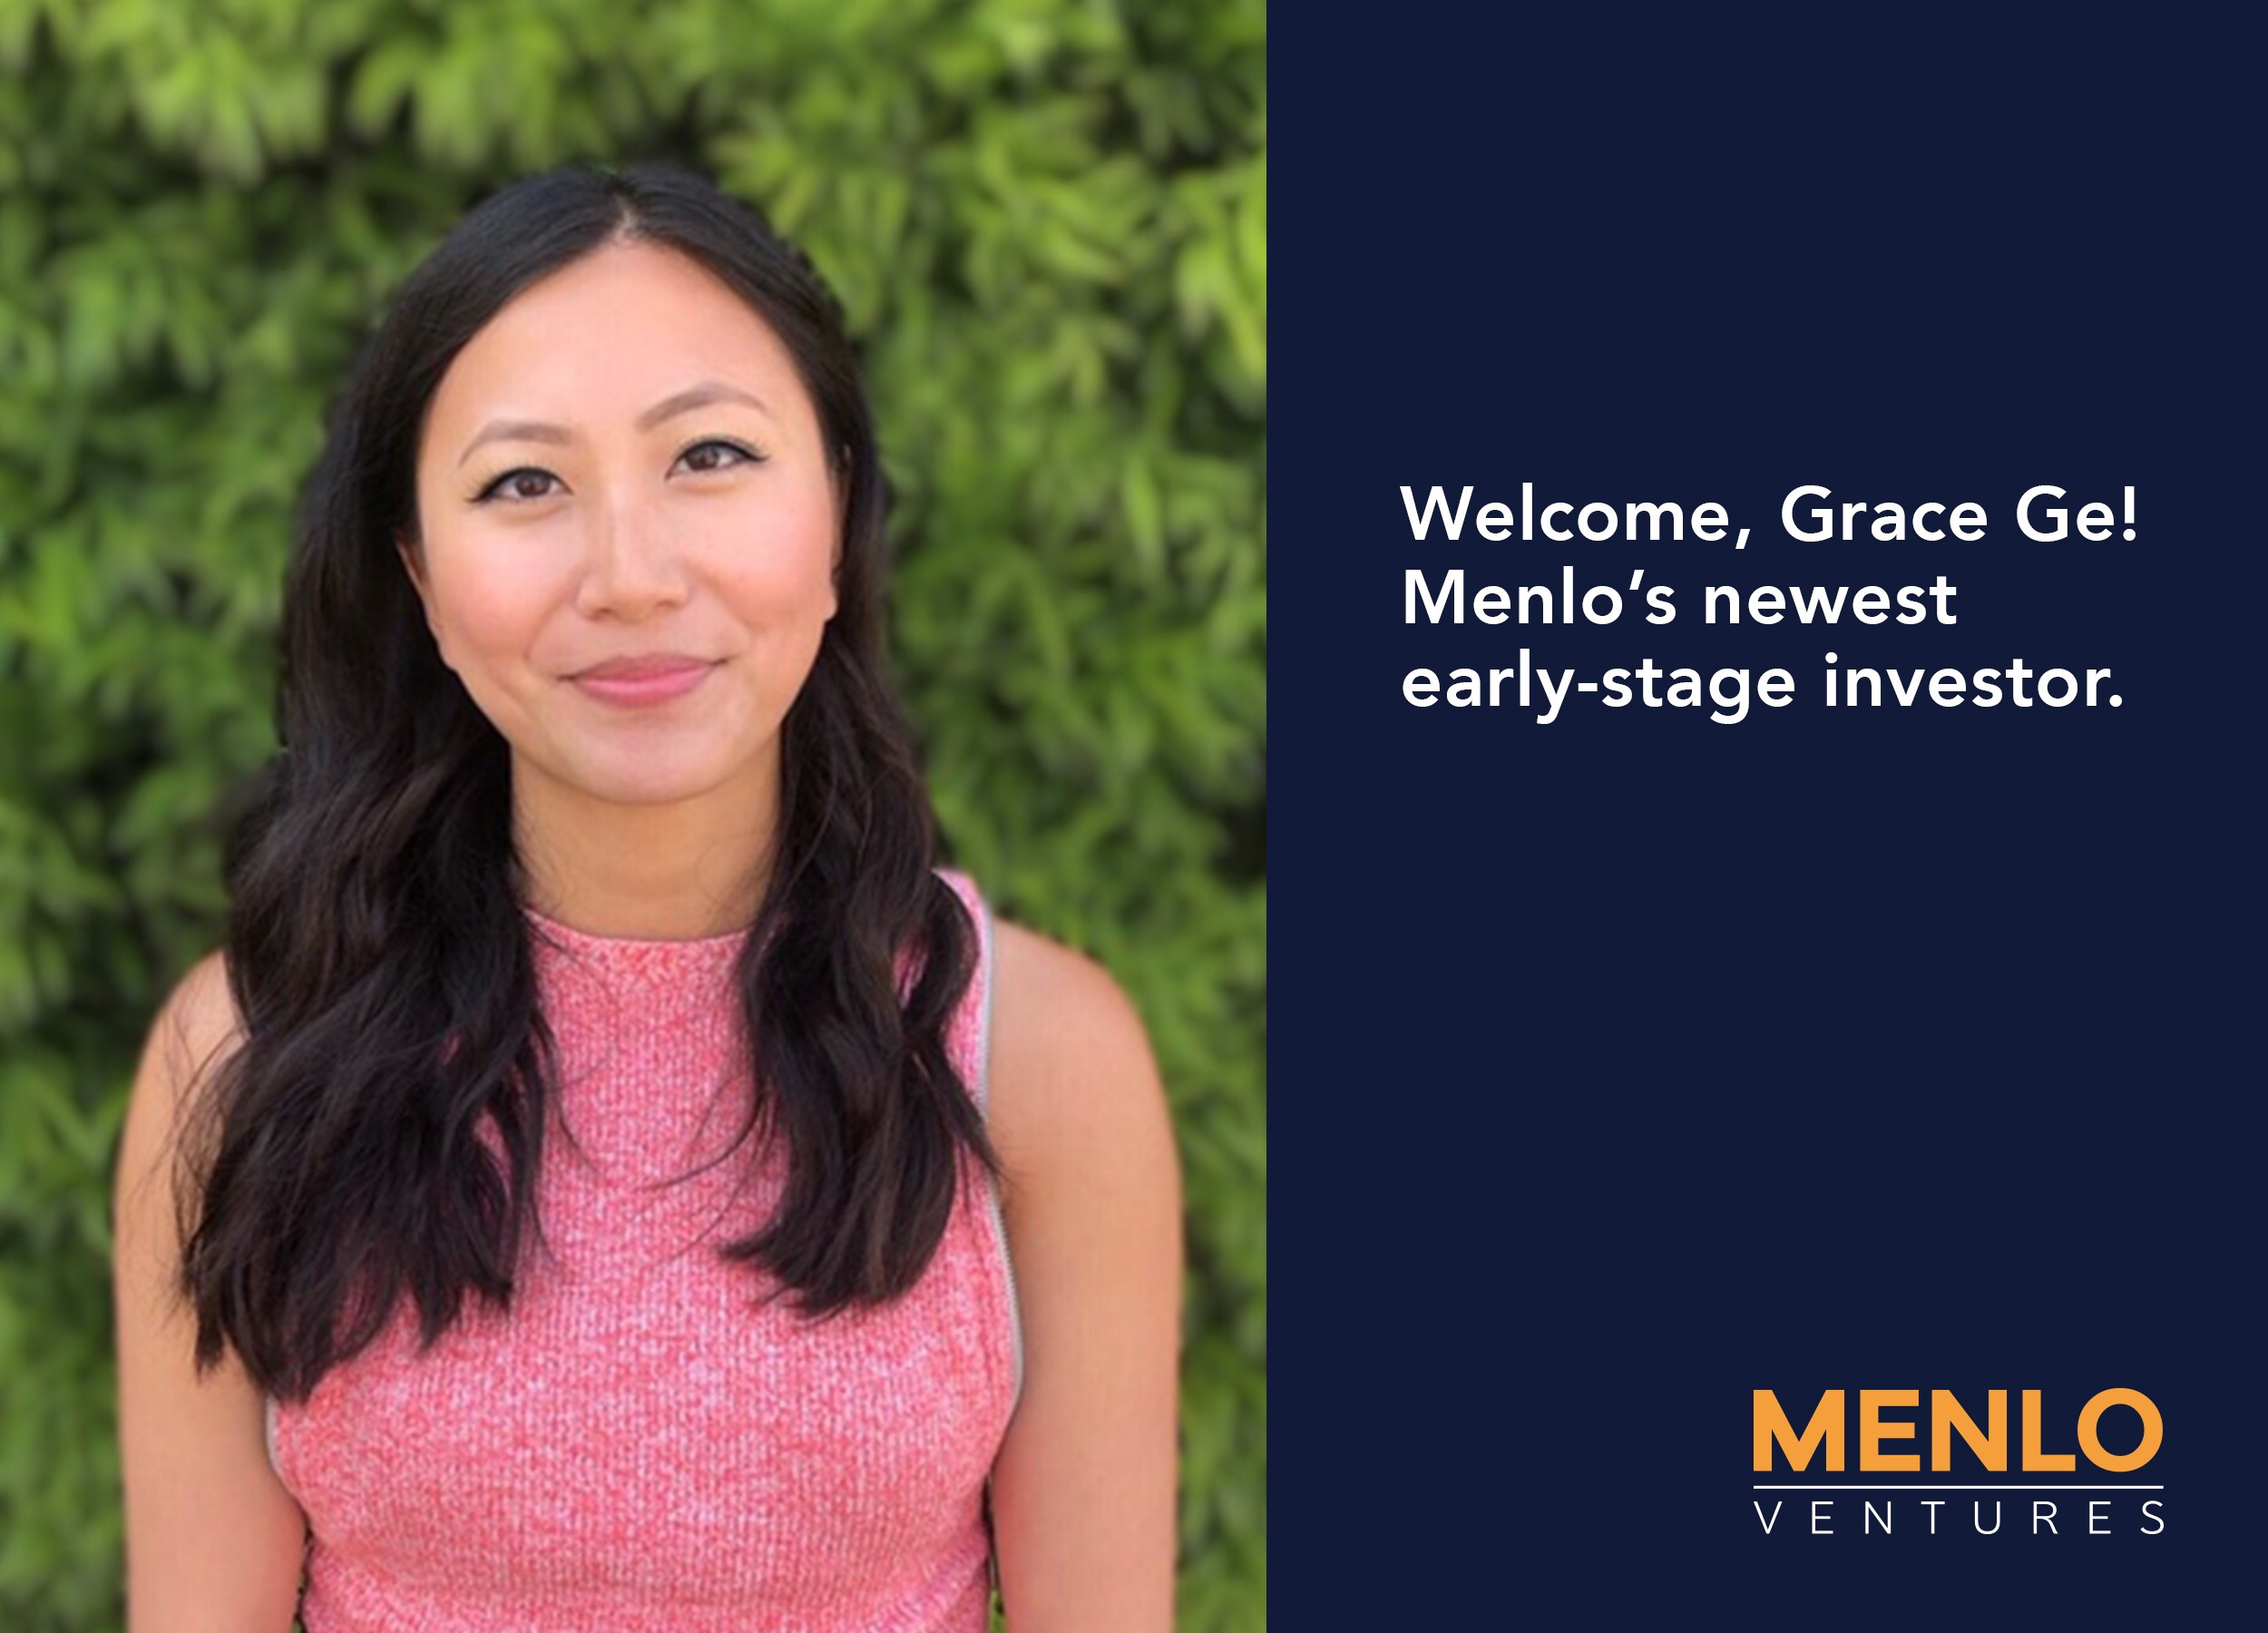 Menlo Ventures Welcomes Grace Ge, Our Newest Early-Stage